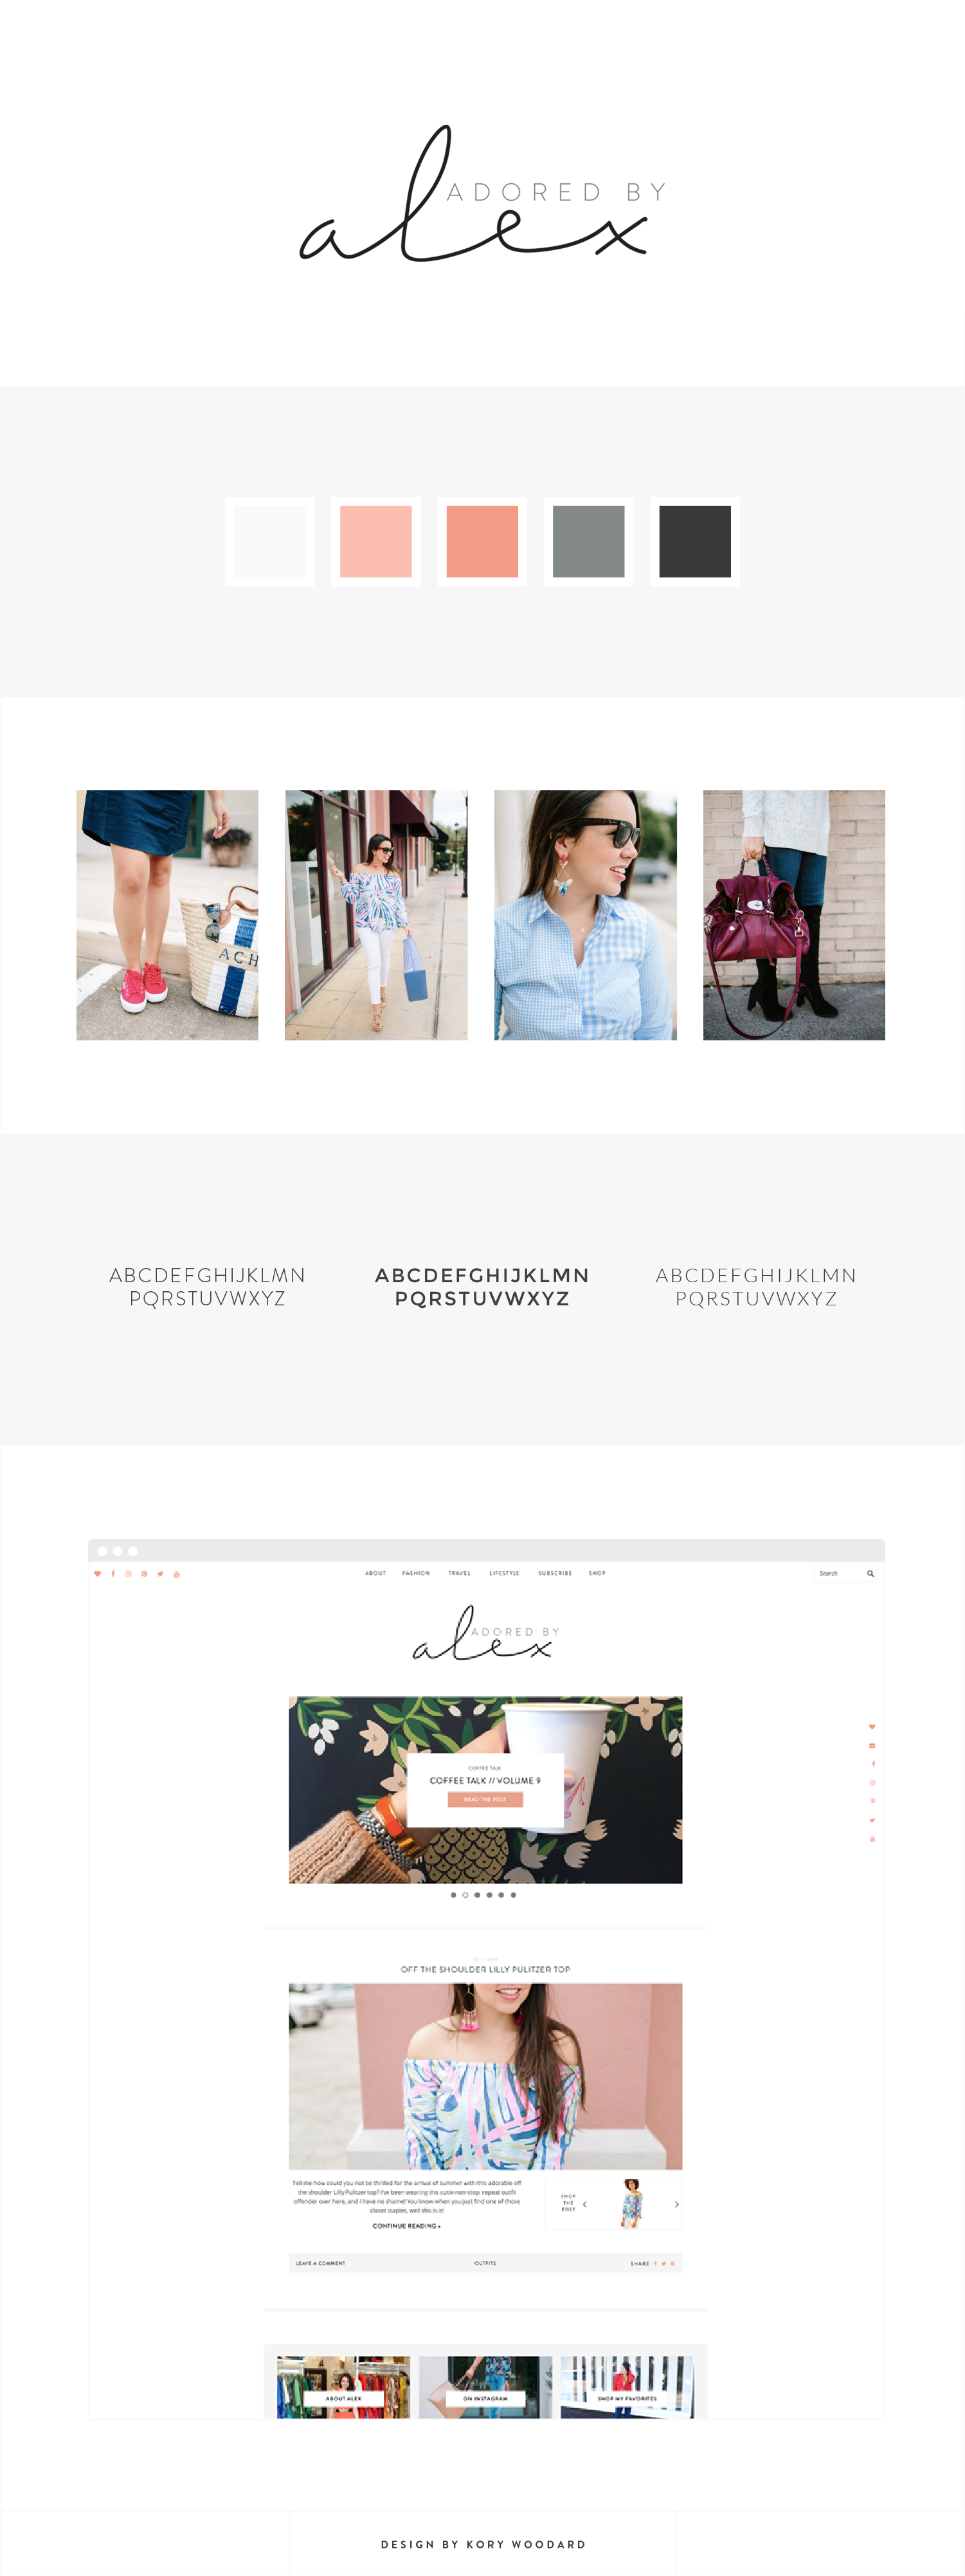 Adored By Alex | Branding + Blog Design by Kory Woodard